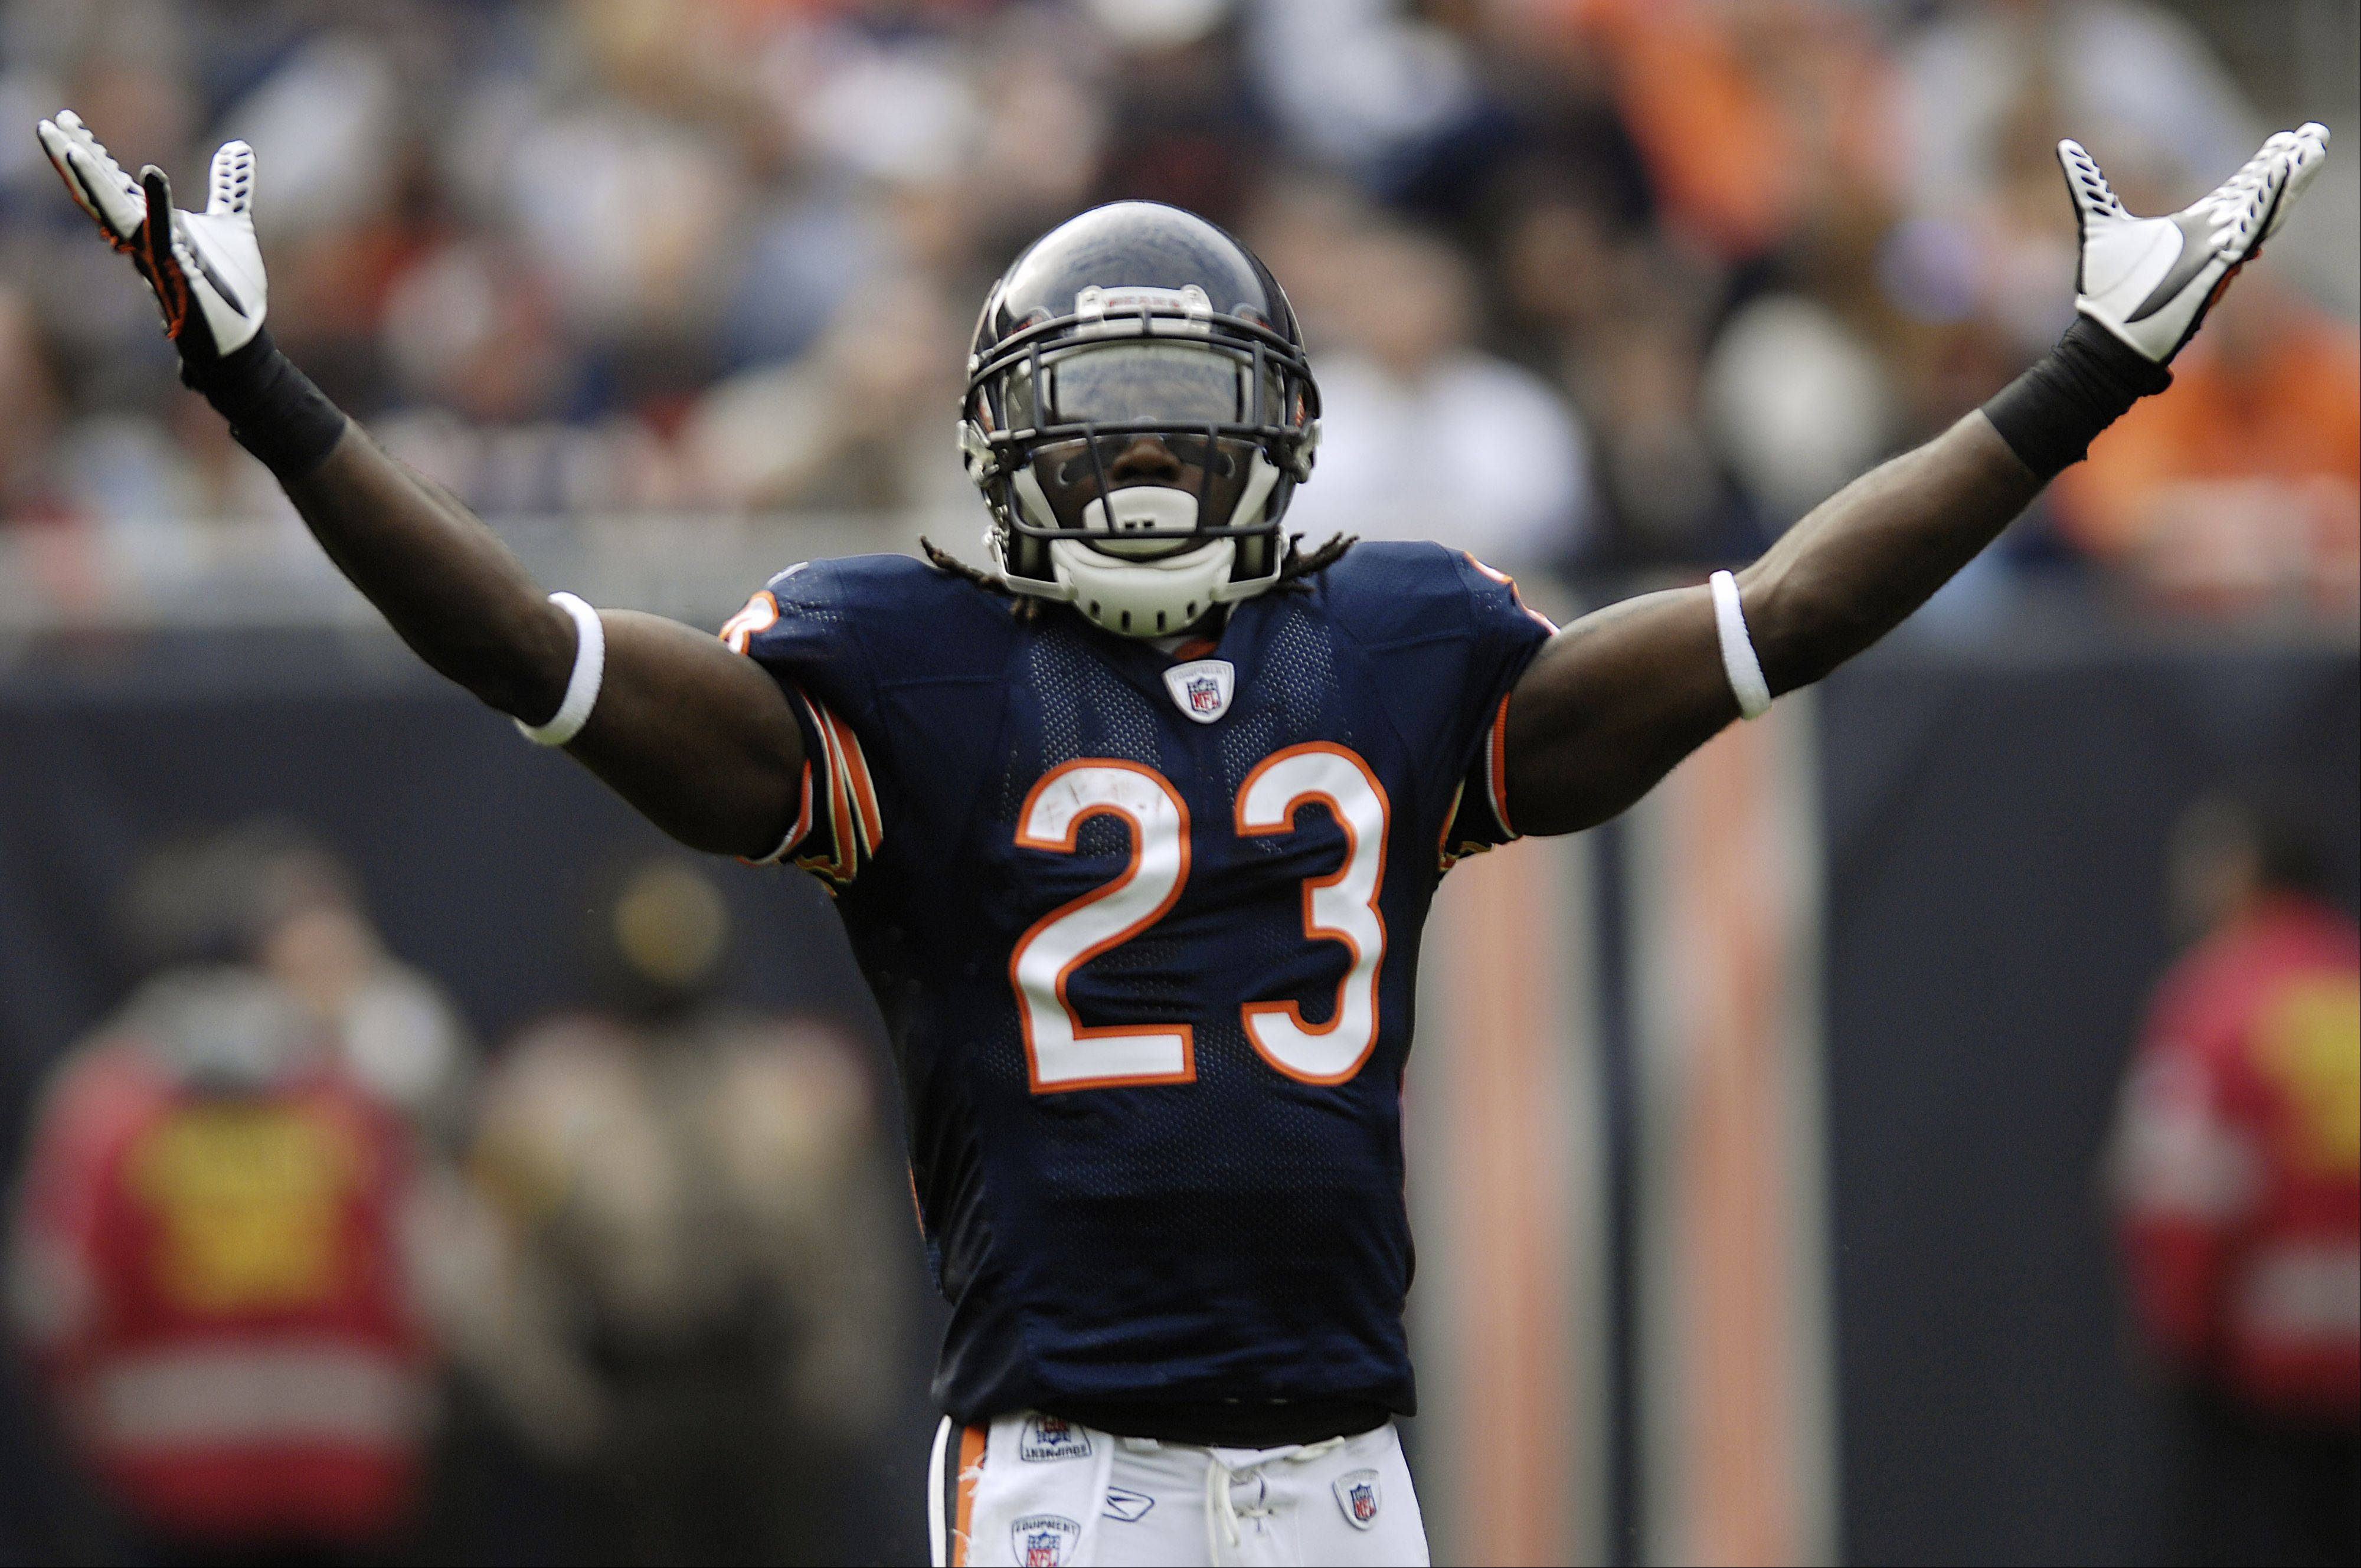 The Bears' Devin Hester is expected to return to action Sunday after being sidelined with a concussion.